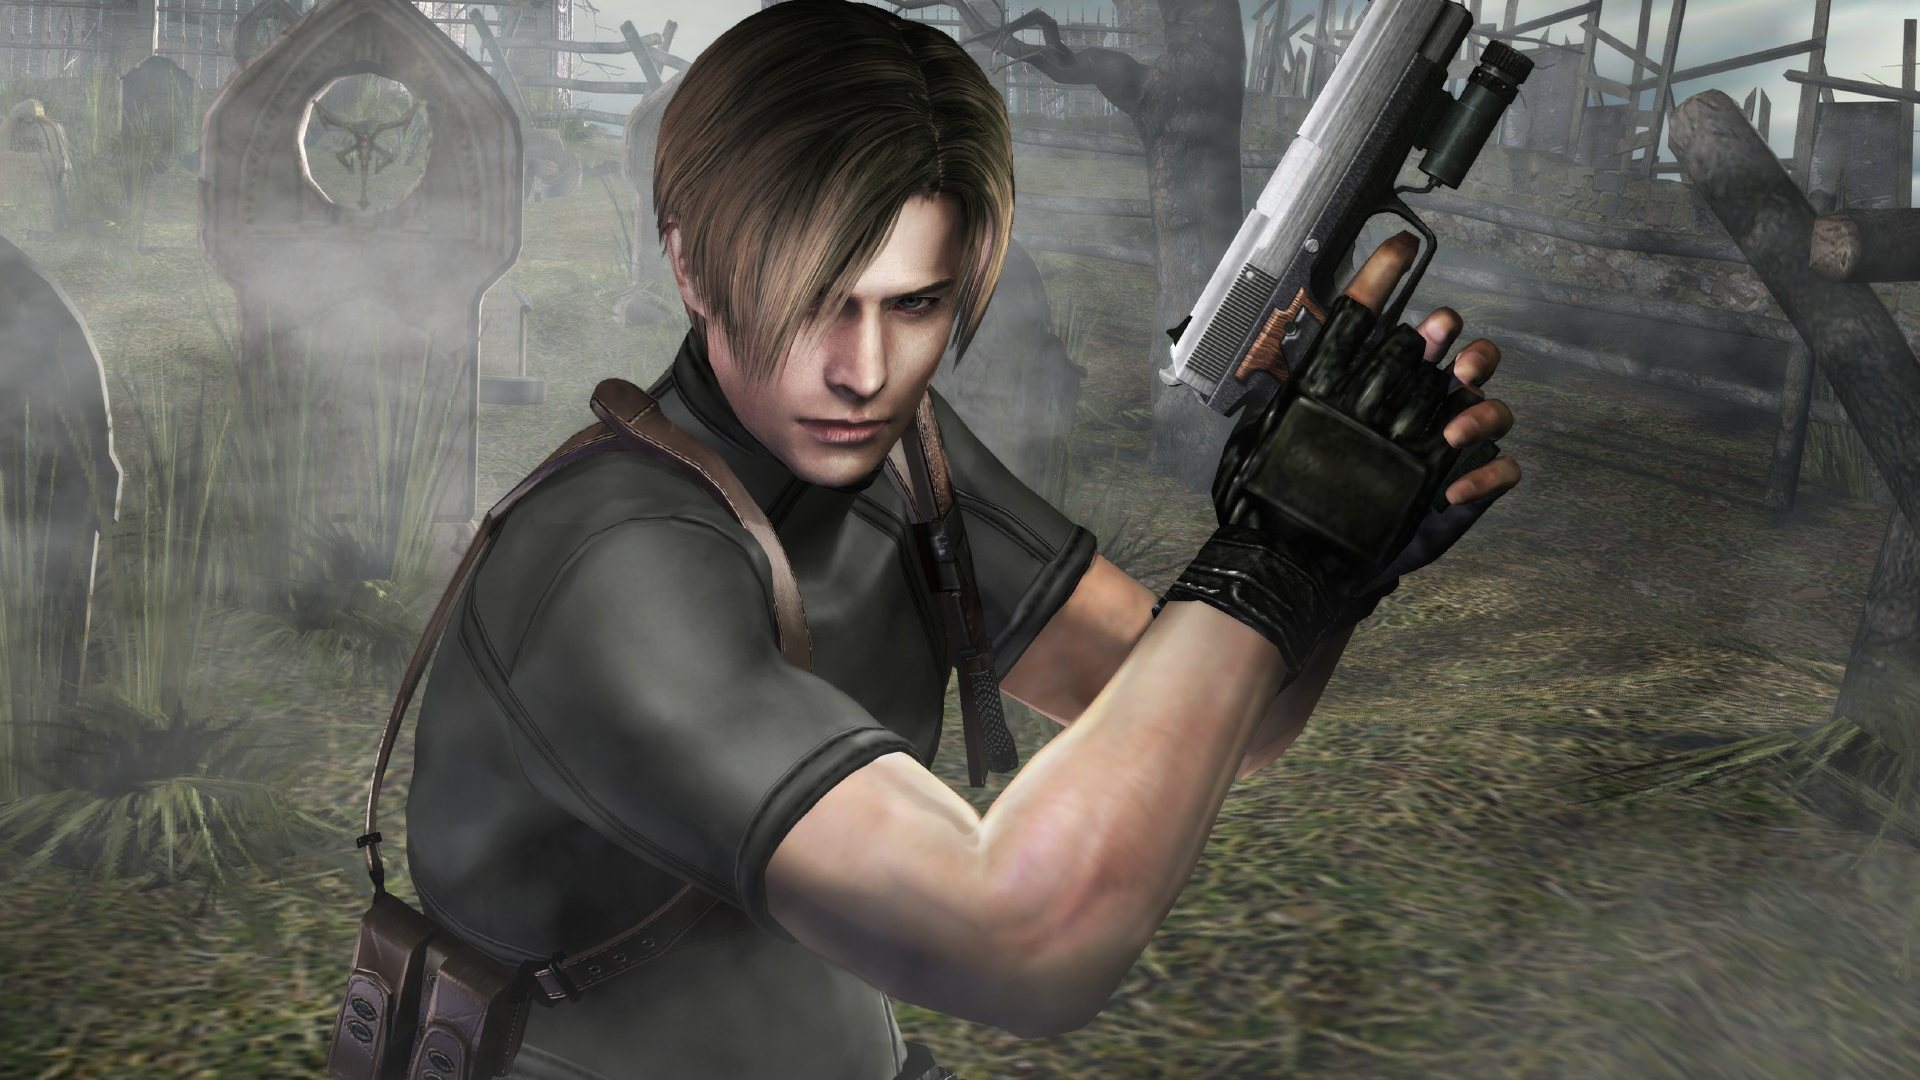 53 Resident Evil 4 Leon Wallpaper On Wallpapersafari